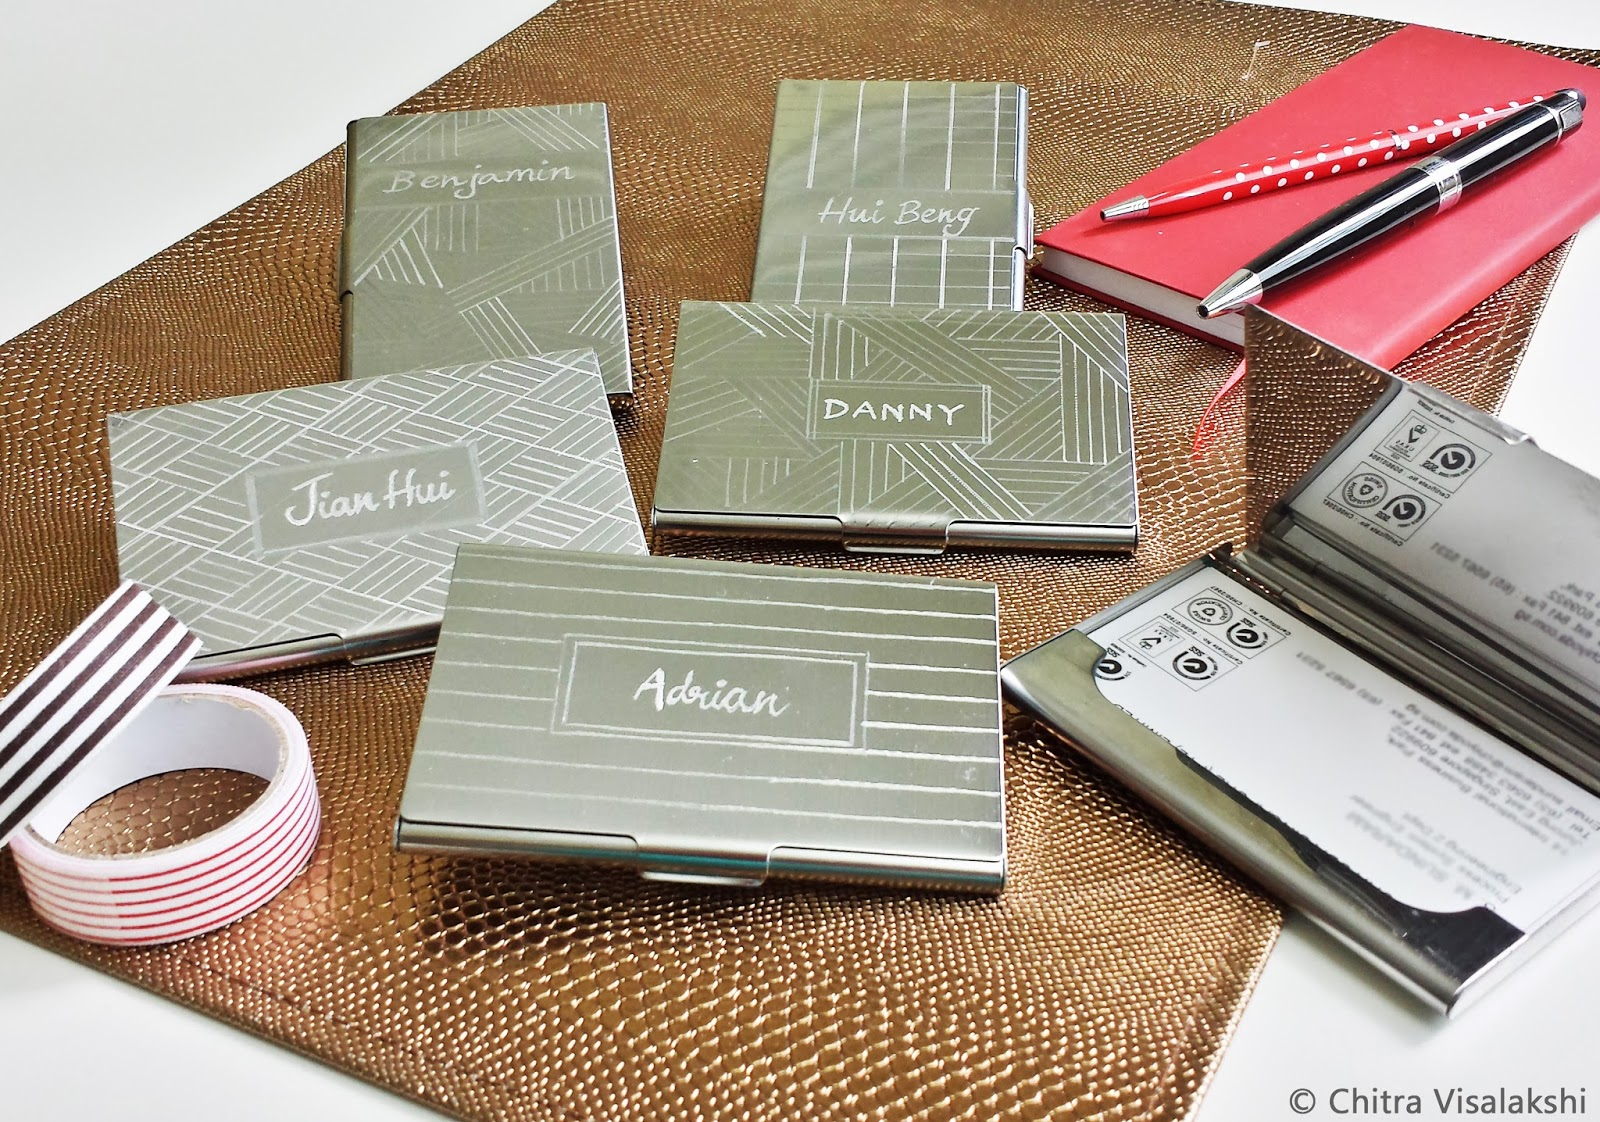 Craft with chitra business card holders personalized engraving these business card holders are stainless steel sleek and engraved with customized designs and logos each case can hold upto 15 standard size business colourmoves